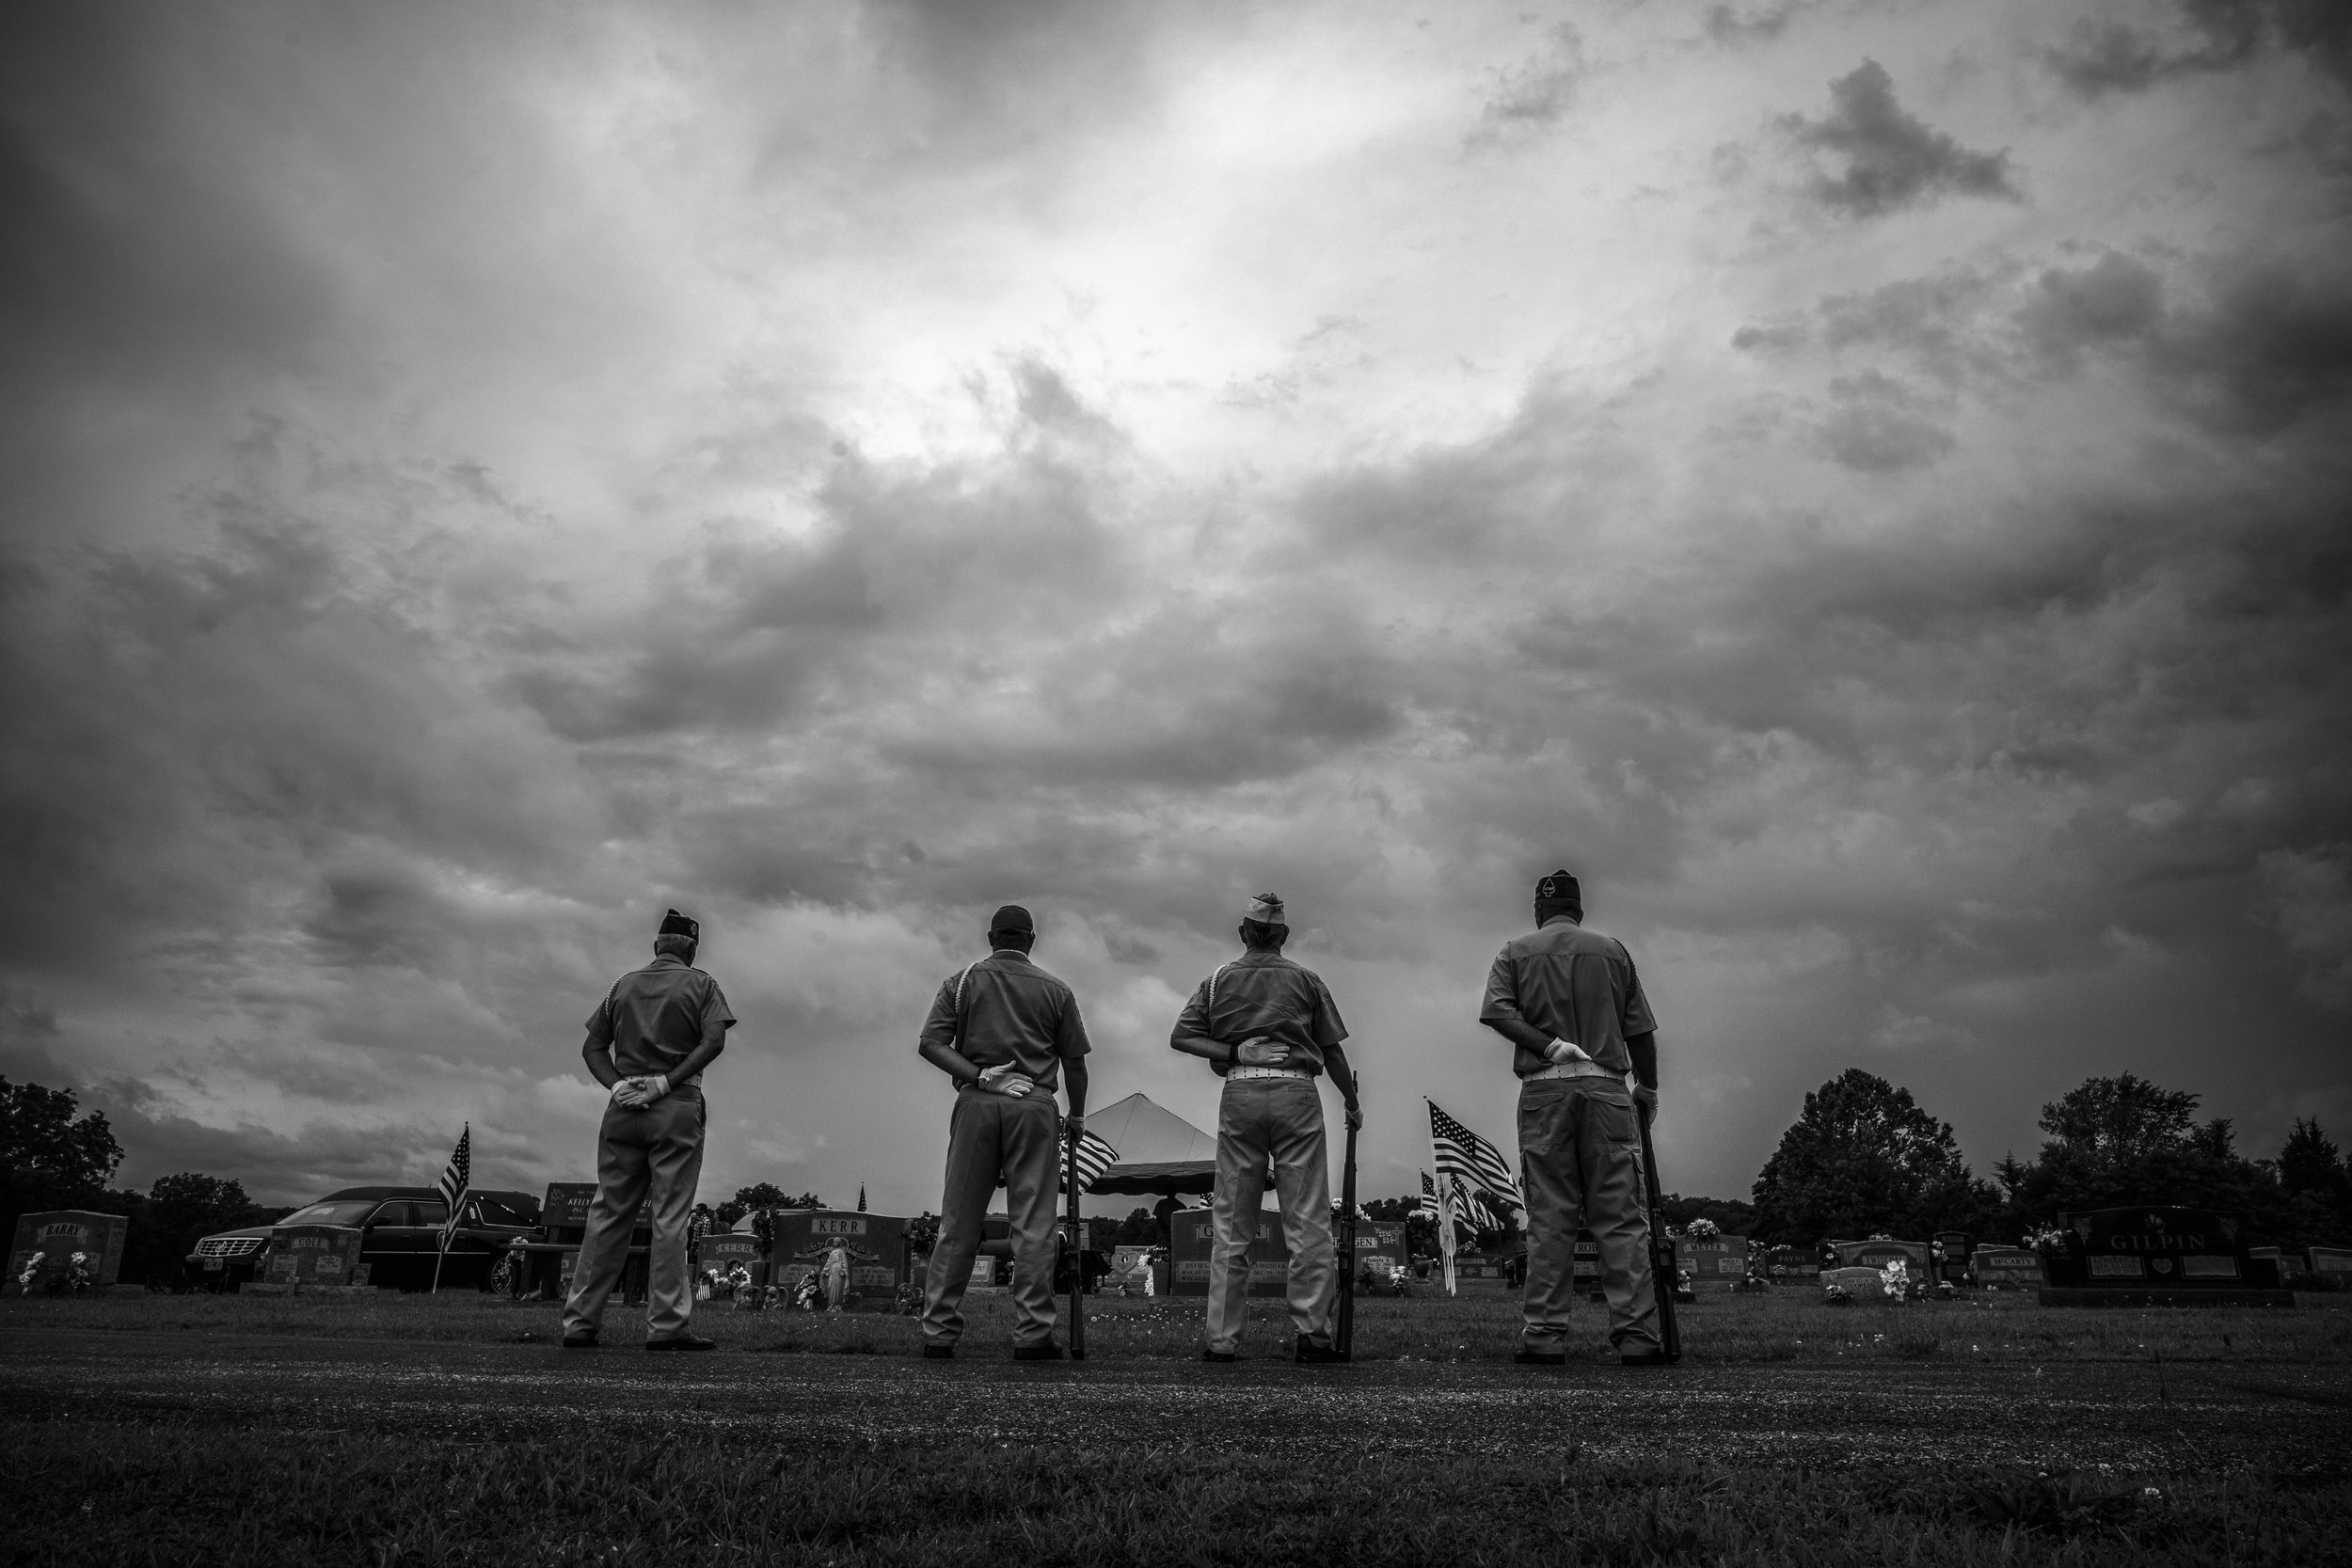 VFW 2442 Honor Guards wait before firing their 3 shot salute during a Vietnam veteran's funeral in central Missouri on Wednesday, Jun. 19, 2019.